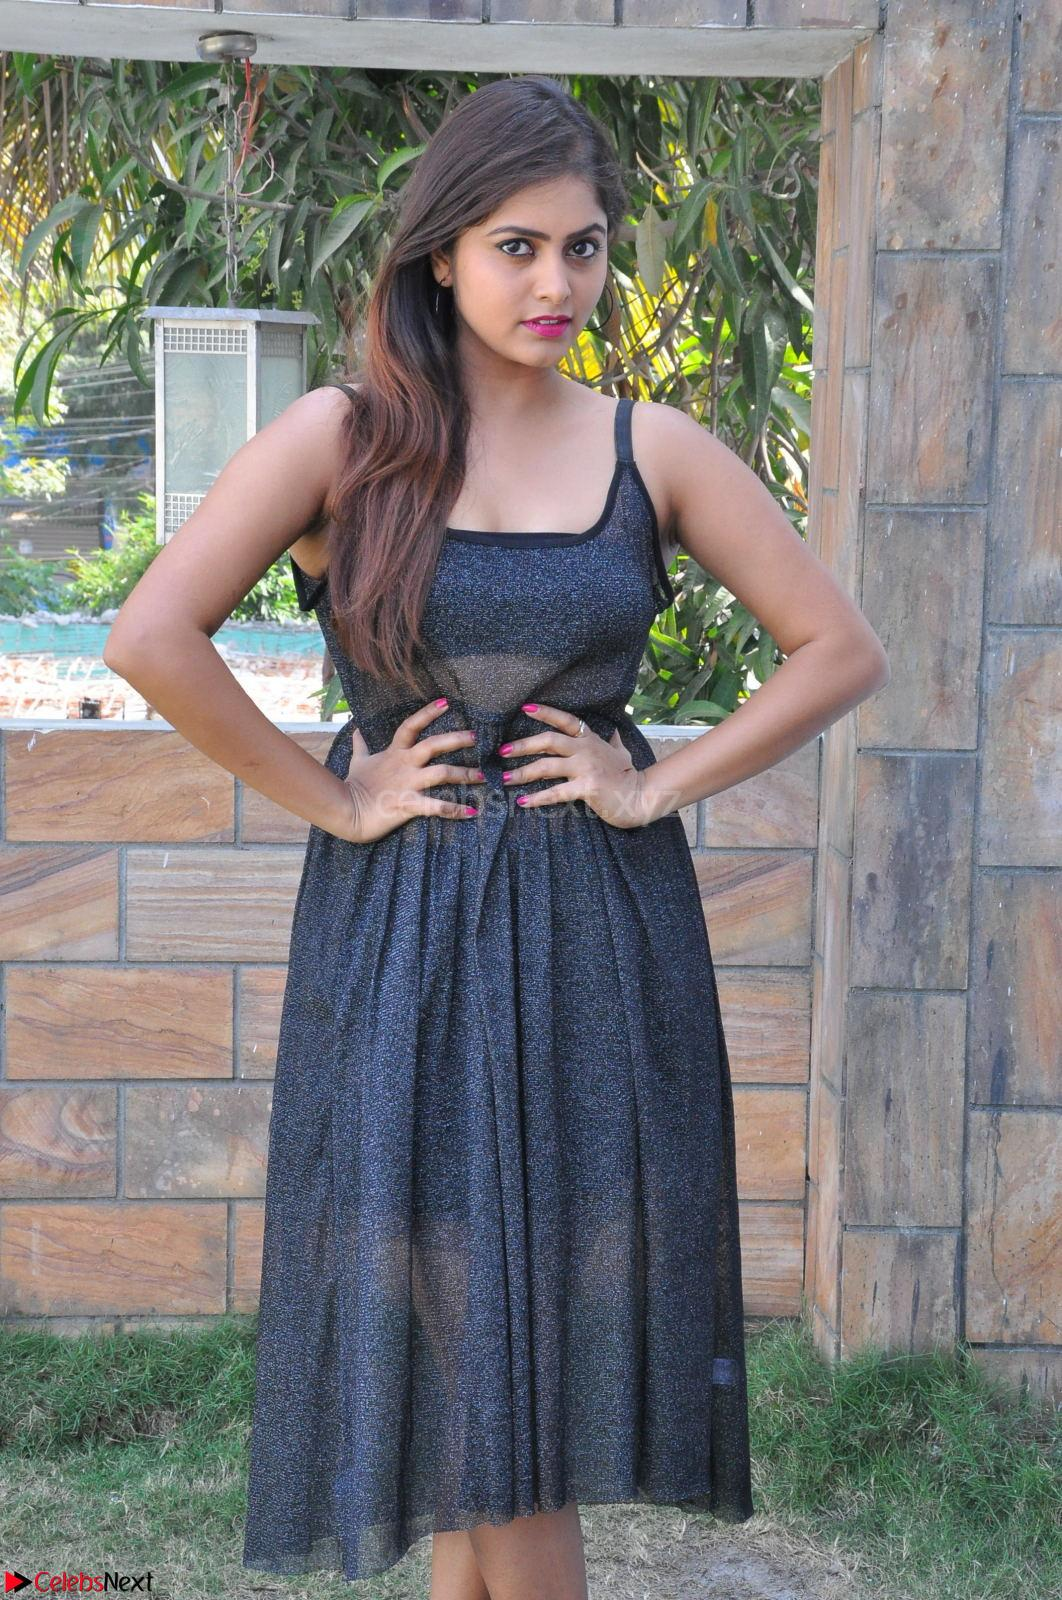 Pragya Nayan New Fresh Telugu Actress Stunning Transparent Black Deep neck Dress ~ CelebsNext Exclusive Galleries